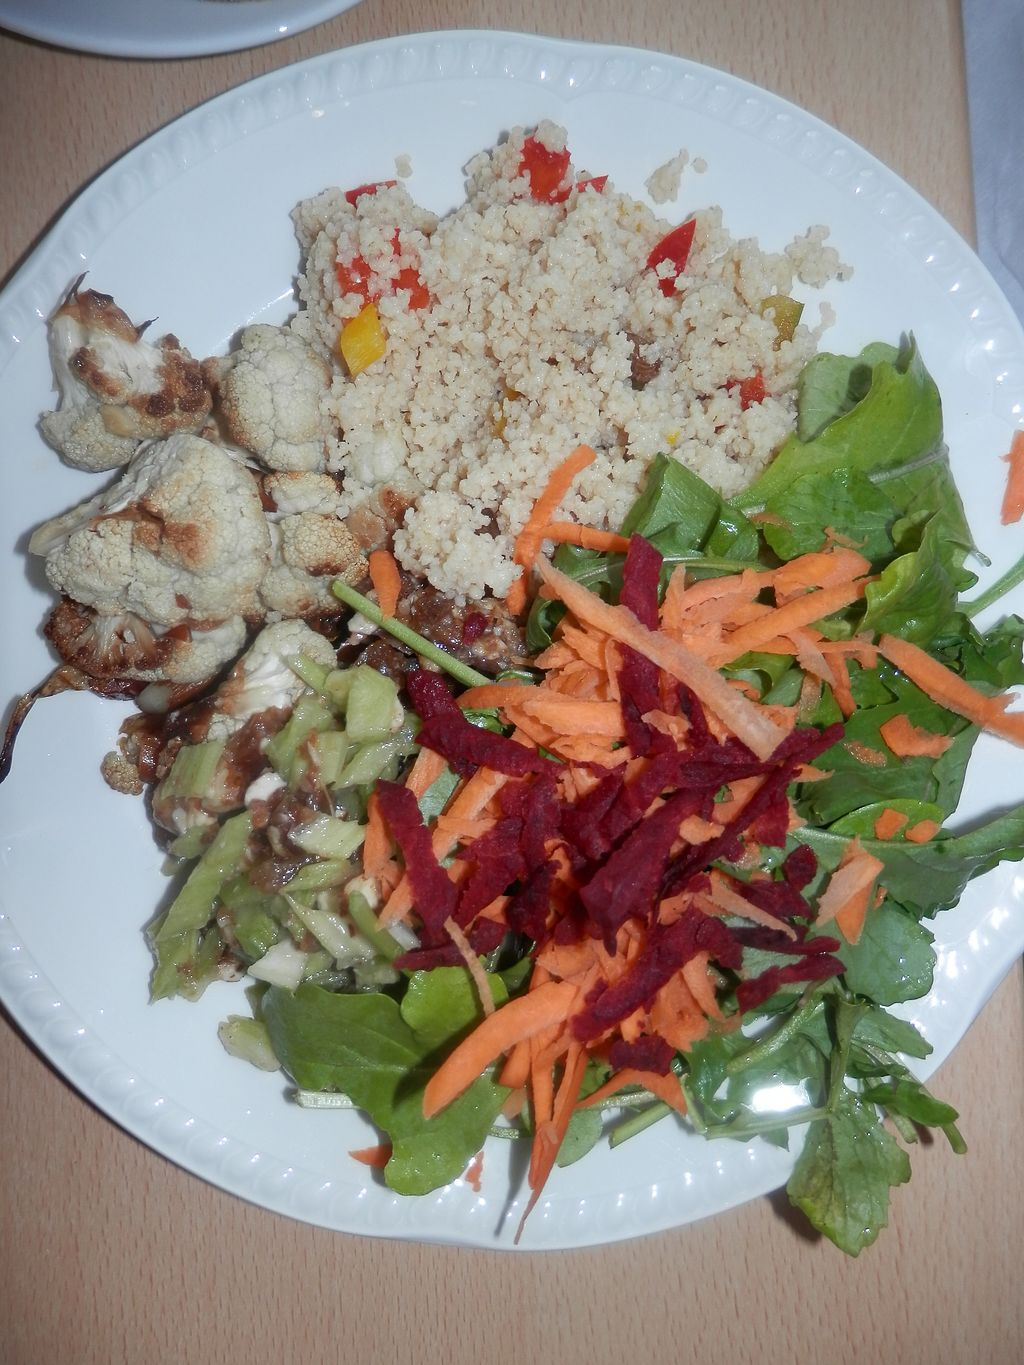 """Photo of Green Britain Centre Vegan Cafe  by <a href=""""/members/profile/Vegan_Belle"""">Vegan_Belle</a> <br/>Couscous and salad <br/> July 3, 2017  - <a href='/contact/abuse/image/67973/276311'>Report</a>"""